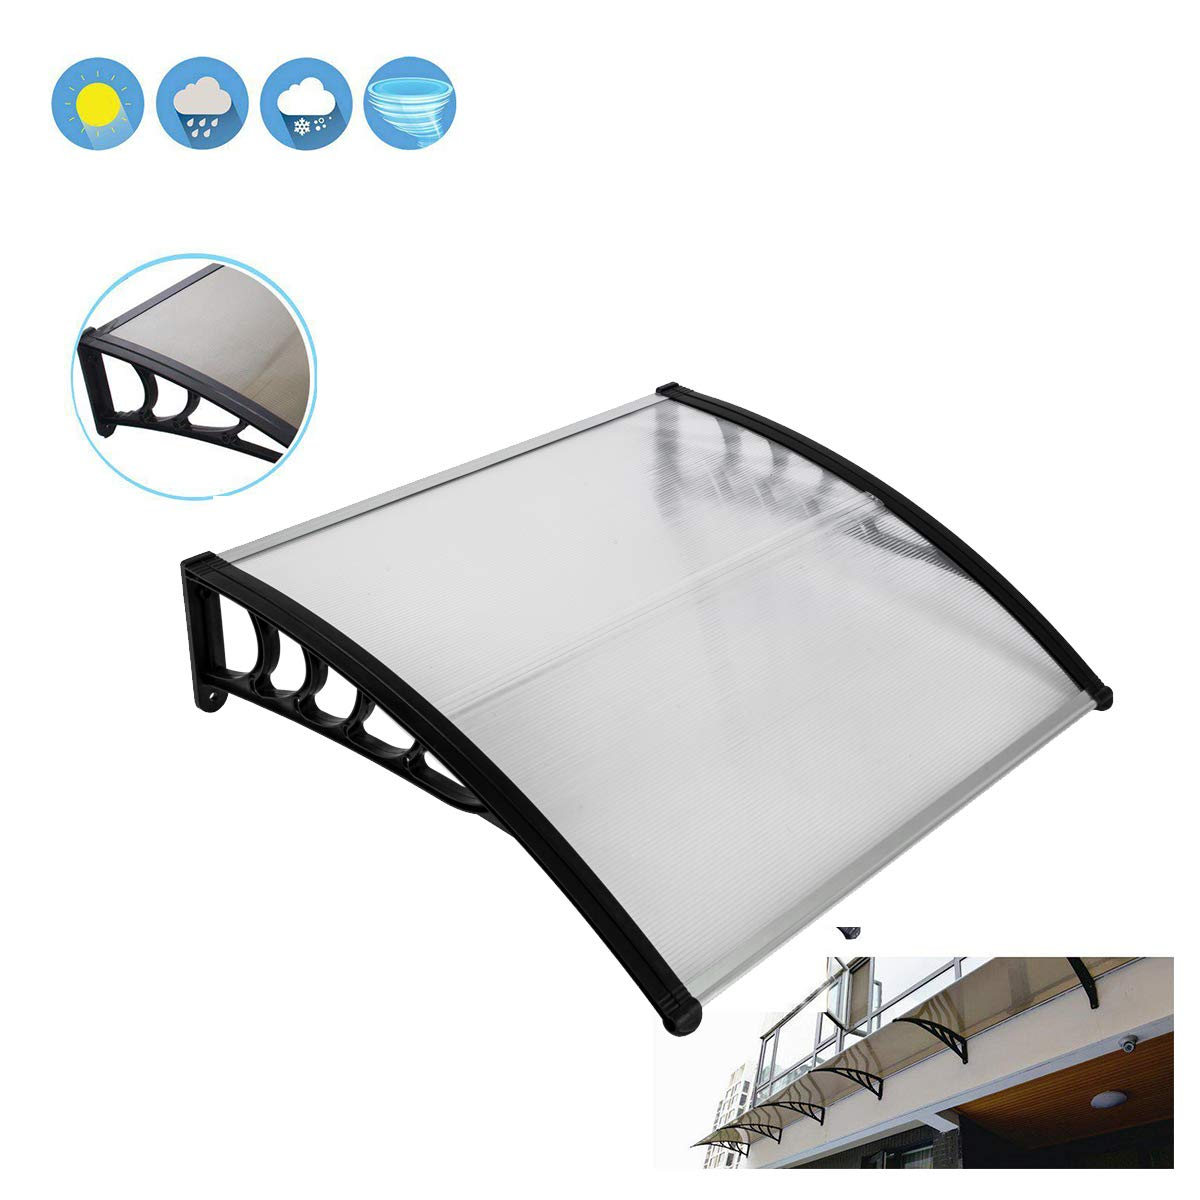 Wegi King Canopy Awning 39×39 Garage Roof,Clear Overhead Window Cover Polycarbonate UV,Rain Snow Protection Hollow Sheet